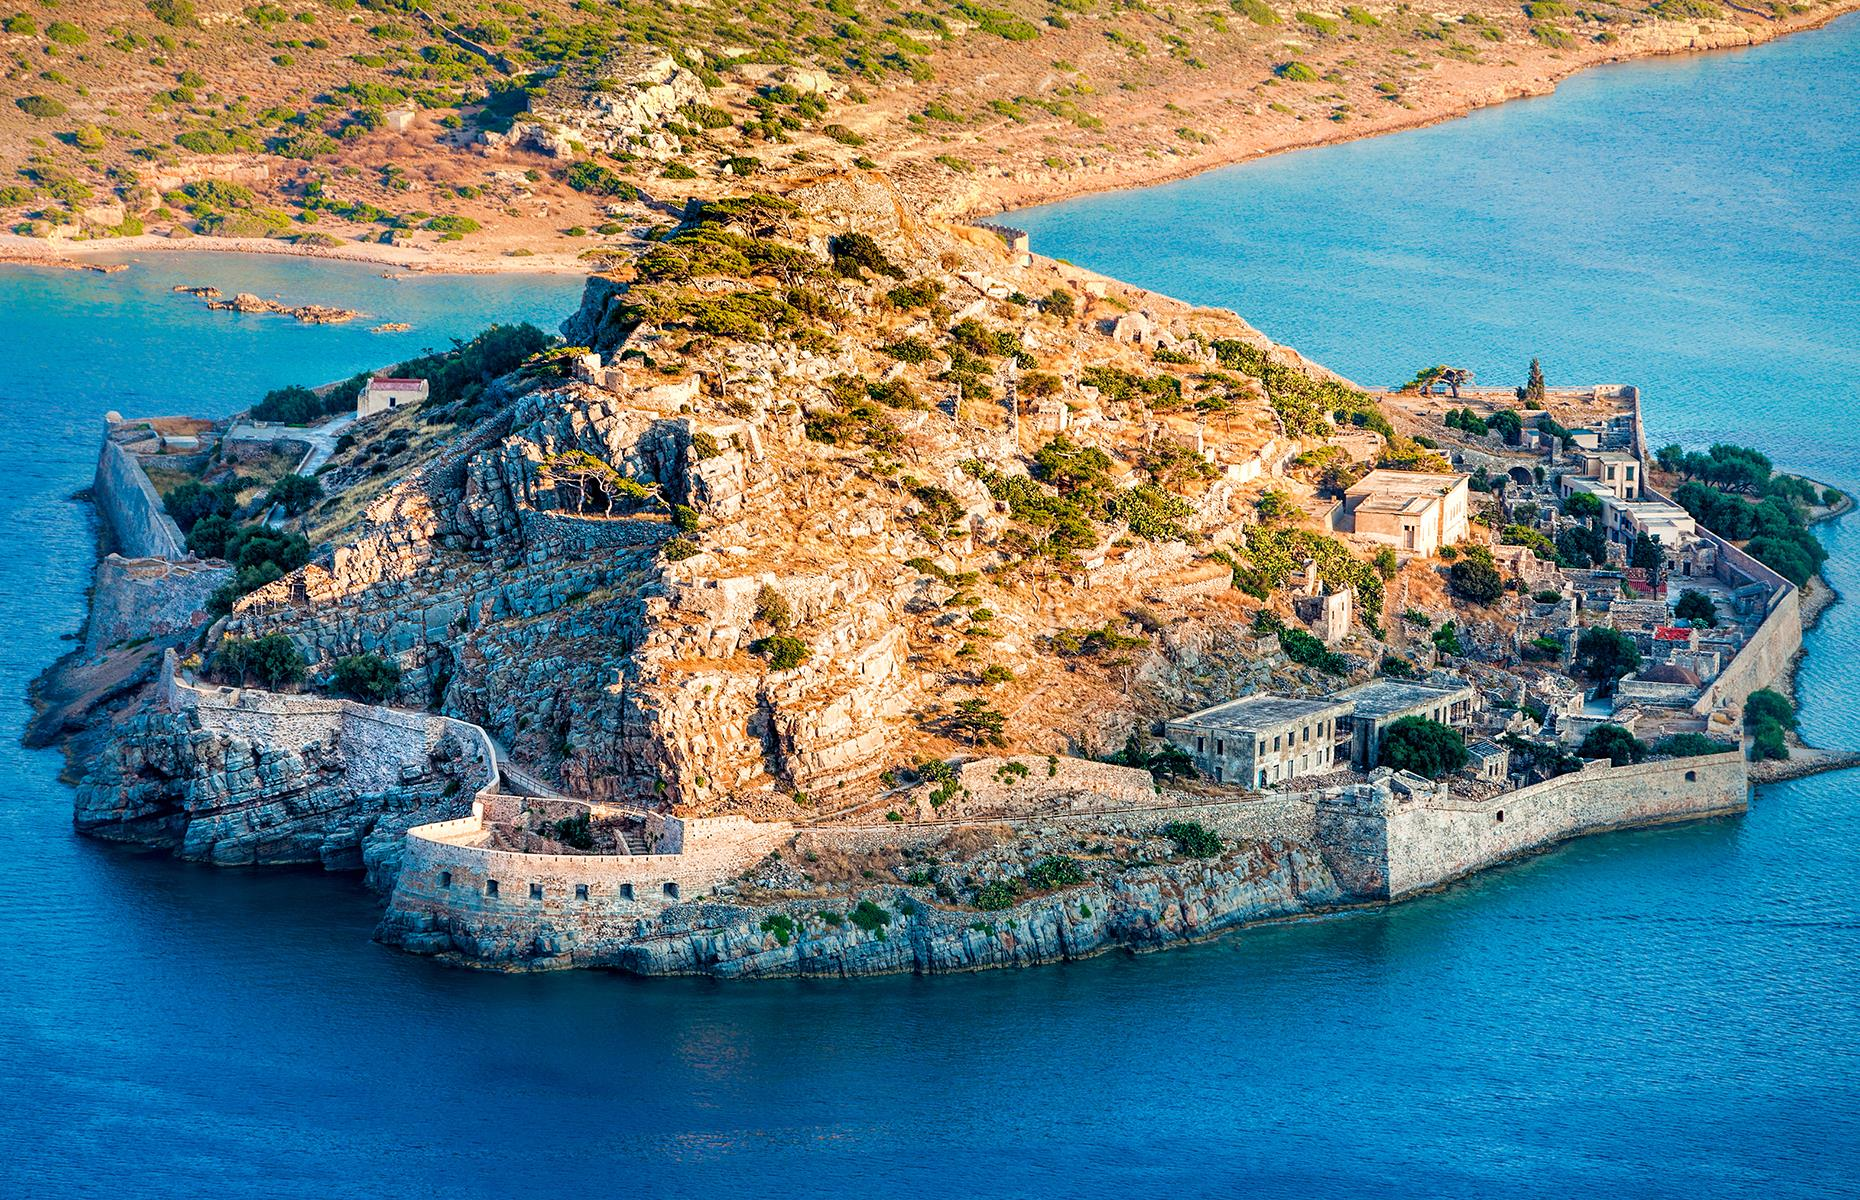 Slide 16 of 68: Located in northeastern Crete, Spinalonga wasn't always an island – during Venetian occupation the coast was carved out for defensive purposes and a fort was built. In 1715, the Ottoman Turks took over the Venetian rule until the Cretan revolt at the end of the 19th century.